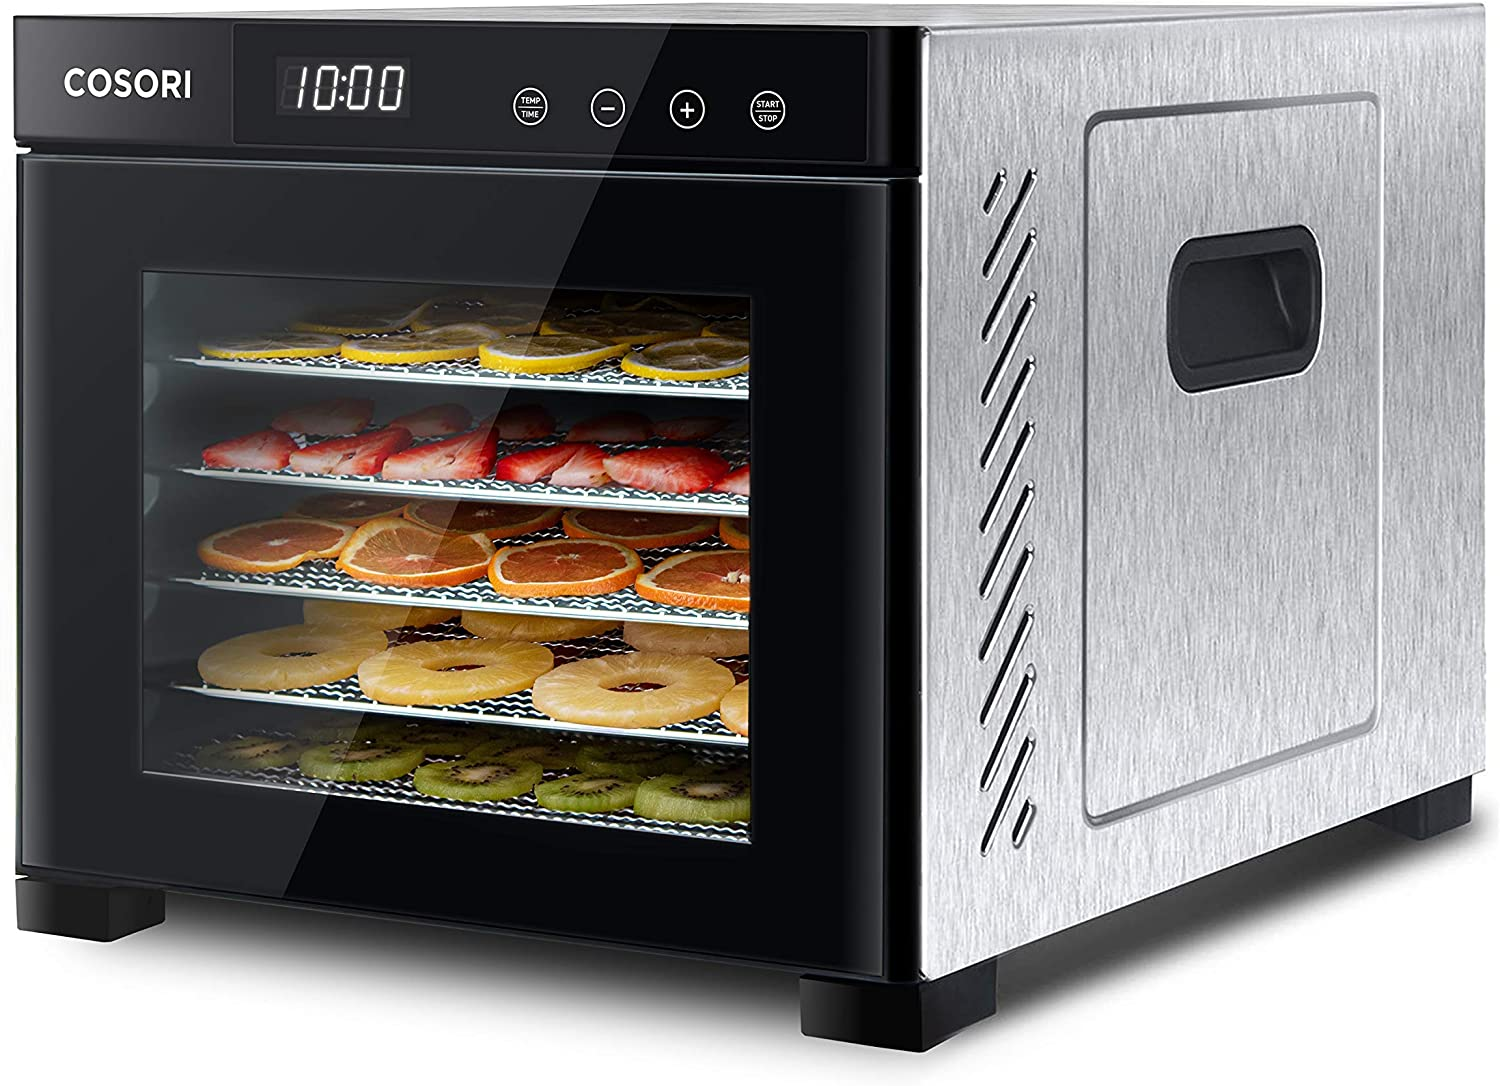 COSORI Max 65% OFF Food Dehydrator Machine online shopping 50 Stee Free Stainless Recipes